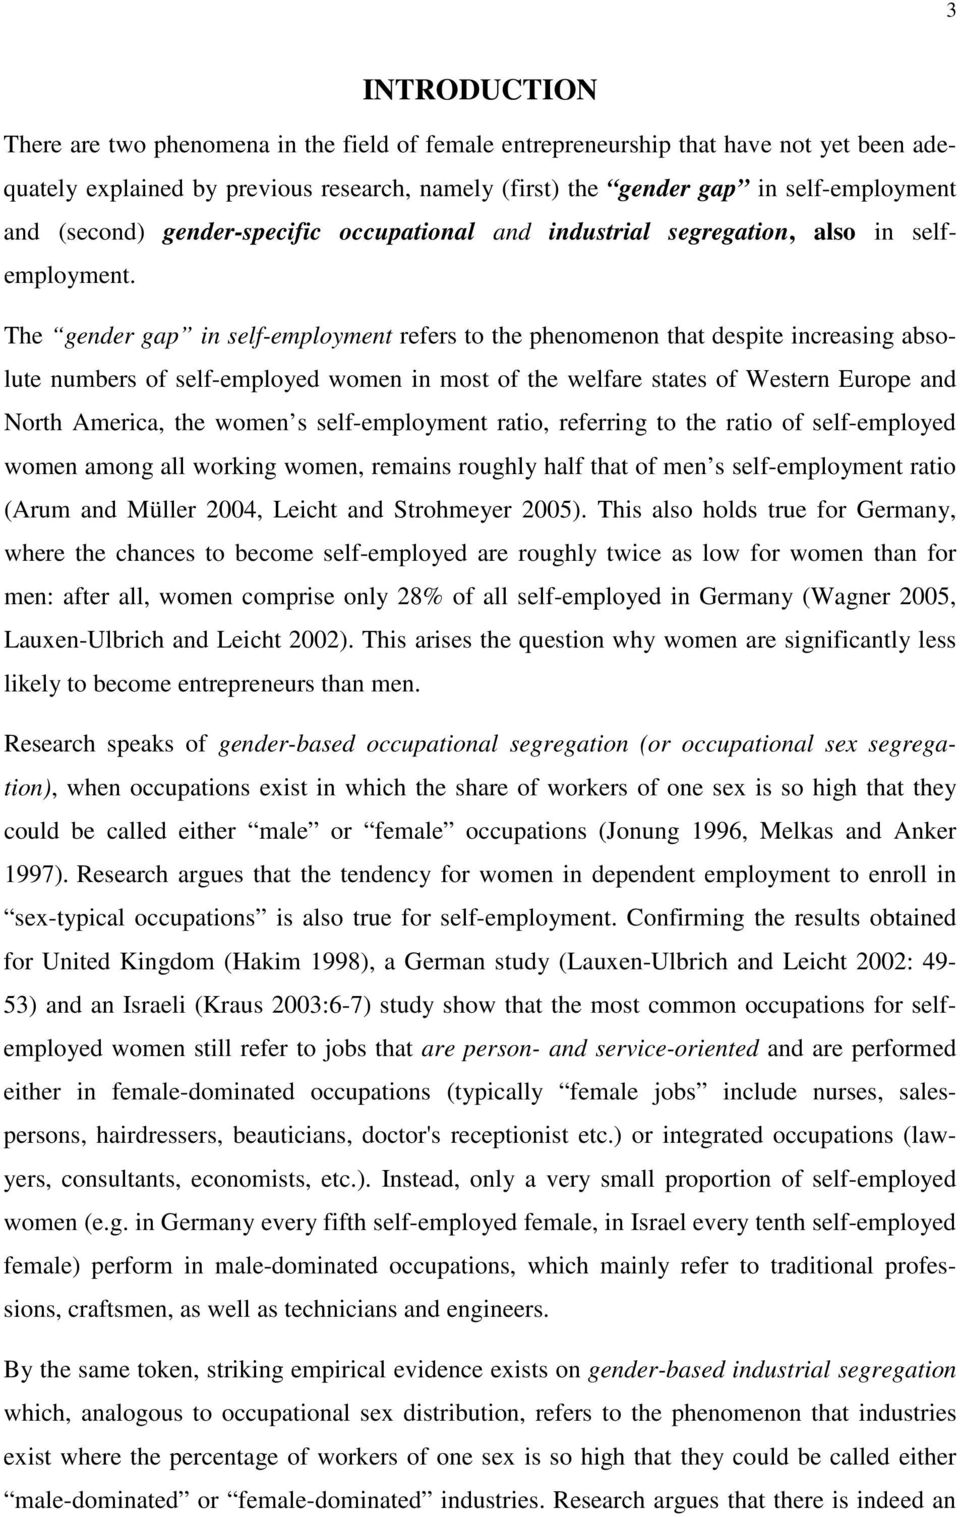 The gender gap in self-employment refers to the phenomenon that despite increasing absolute numbers of self-employed women in most of the welfare states of Western Europe and North America, the women